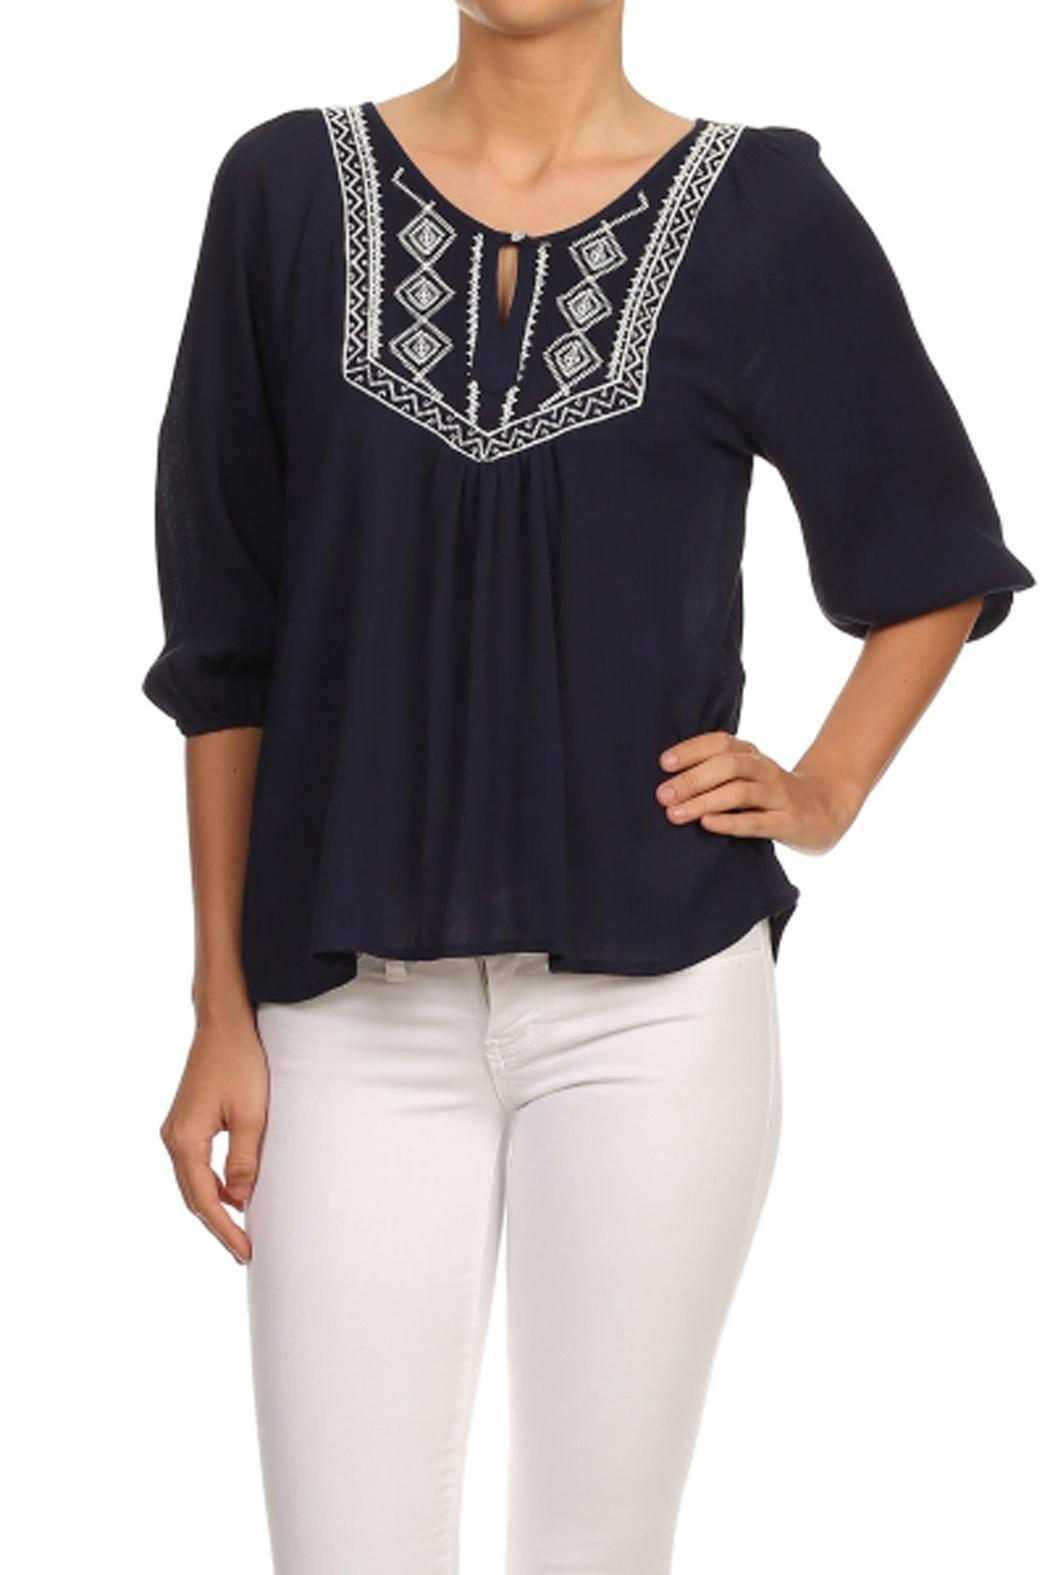 369af4ff07f Haute Monde Boho Embroidery Top from Orange County by Maple Boutique ...